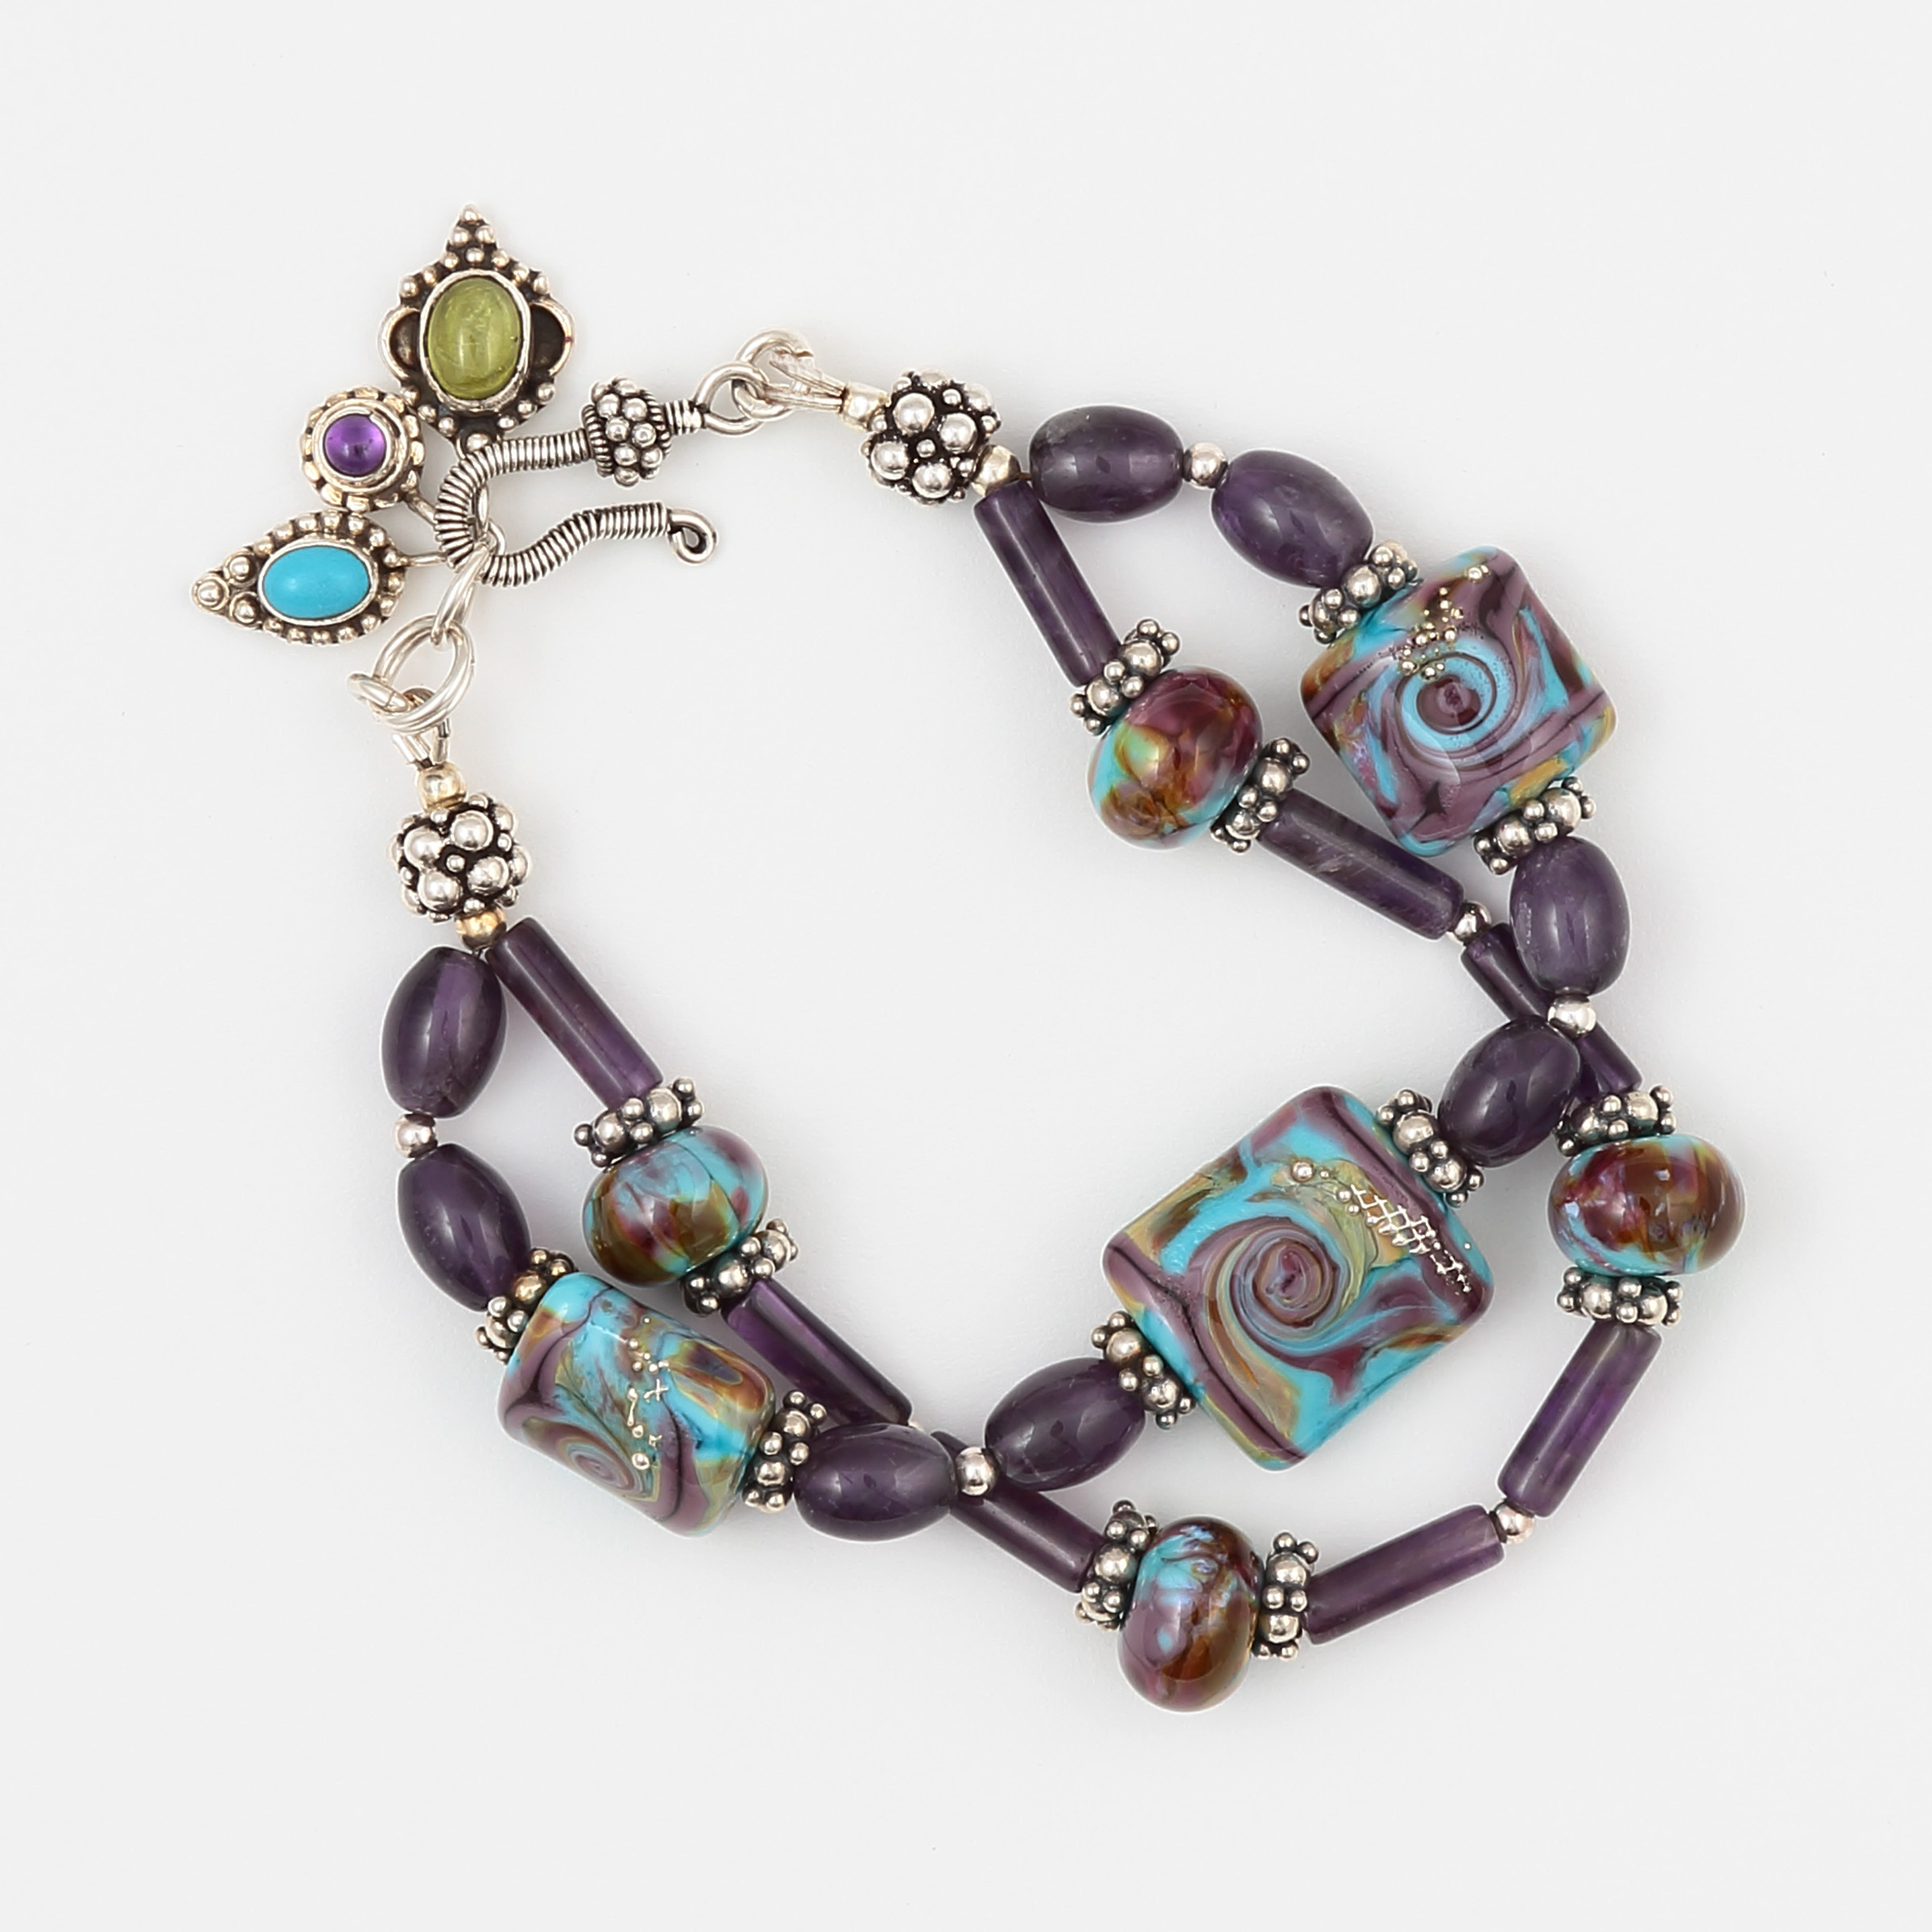 Hypnotique Bracelet – Amethyst Gemstones and Art Glass